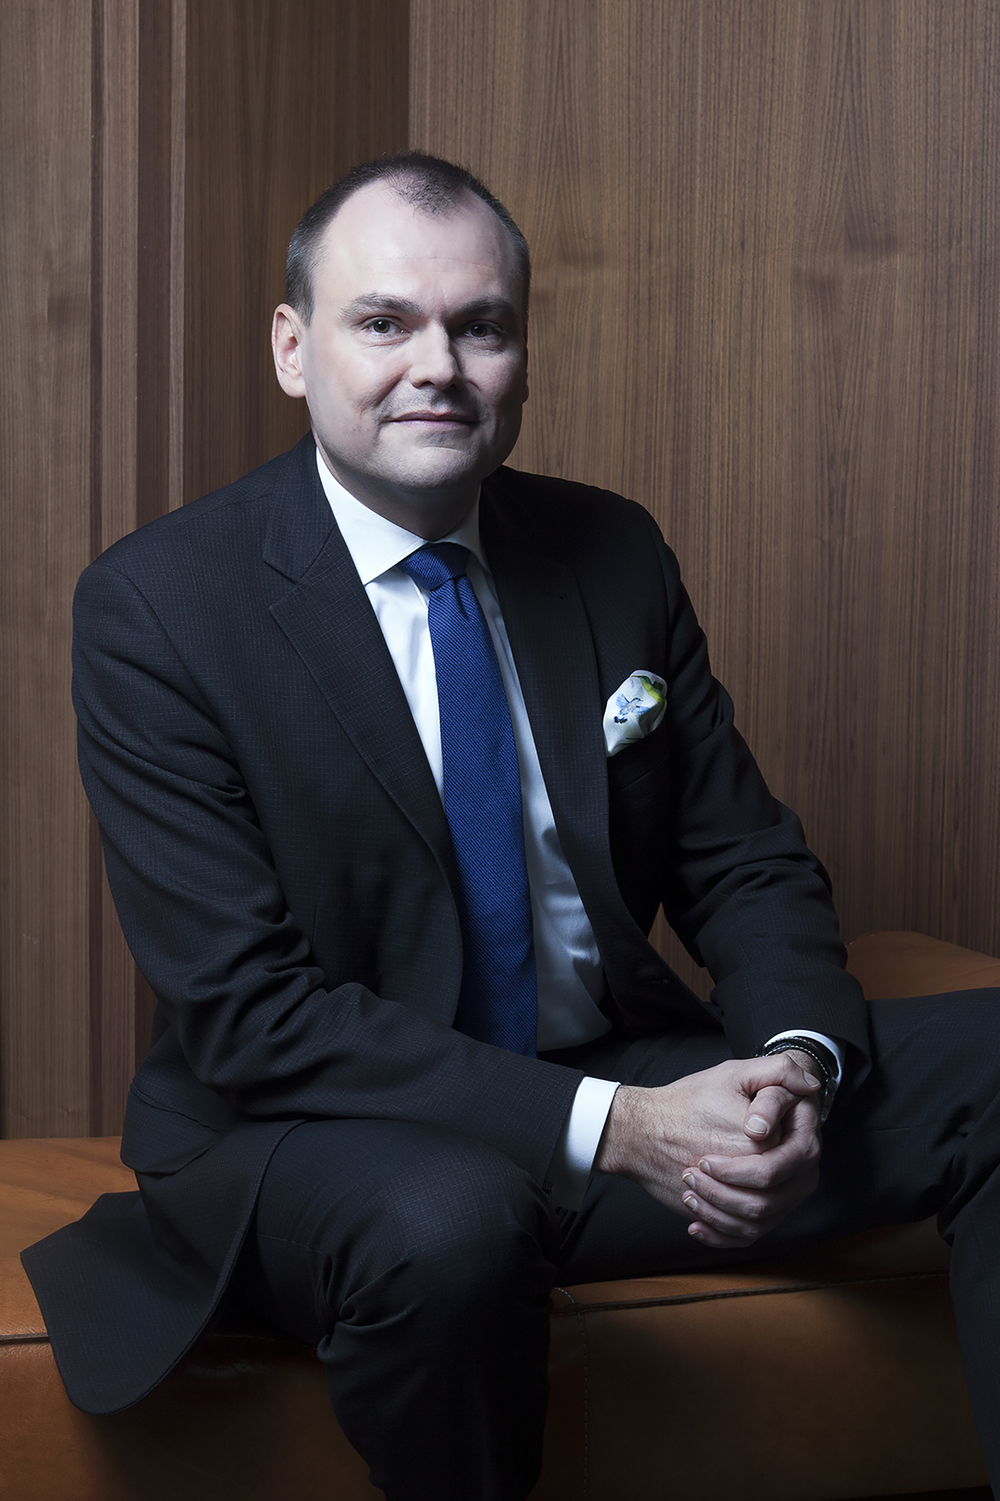 JUDr. Ondřej Trubač, Ph.D., LL.M., attorney at law (CZ)   Ondřej is a co-founder of Bříza & Trubač Attorneys at Law. He obtained his Master's and PhD degree at the Faculty of Law at Charles University in Prague. In addition, he completed his postgraduate studies at Christian-Albrechts-Universität zu Kiel (LL.M.). In his practice, he focuses on a wide scope of legal services, in particular on the complex topic of tax proceedings and clients´ representation of clients before tax administrators, including their consequent representation before administrative courts. He further deals with administrative law in general as well as with the newly developing sub-area of criminal law – the criminal tax law and thereto connected issue of active repentance in the context of criminal liability of legal entities. He also provides counselling in the area of corporate compliance.   On a regular basis he gives lectures at the Faculty of Law at Charles University in Prague, at the Faculty of Business and Economics at Mendel University in Brno, at the Czech Bar Association and also contributes to professional publications and other periodicals. Furthermore, Ondřej is a co-author of a commentary to the New Civil Code published by the C. H. Beck, s.r.o. publishing house.  View  Ondrej's Linkedin  profile.